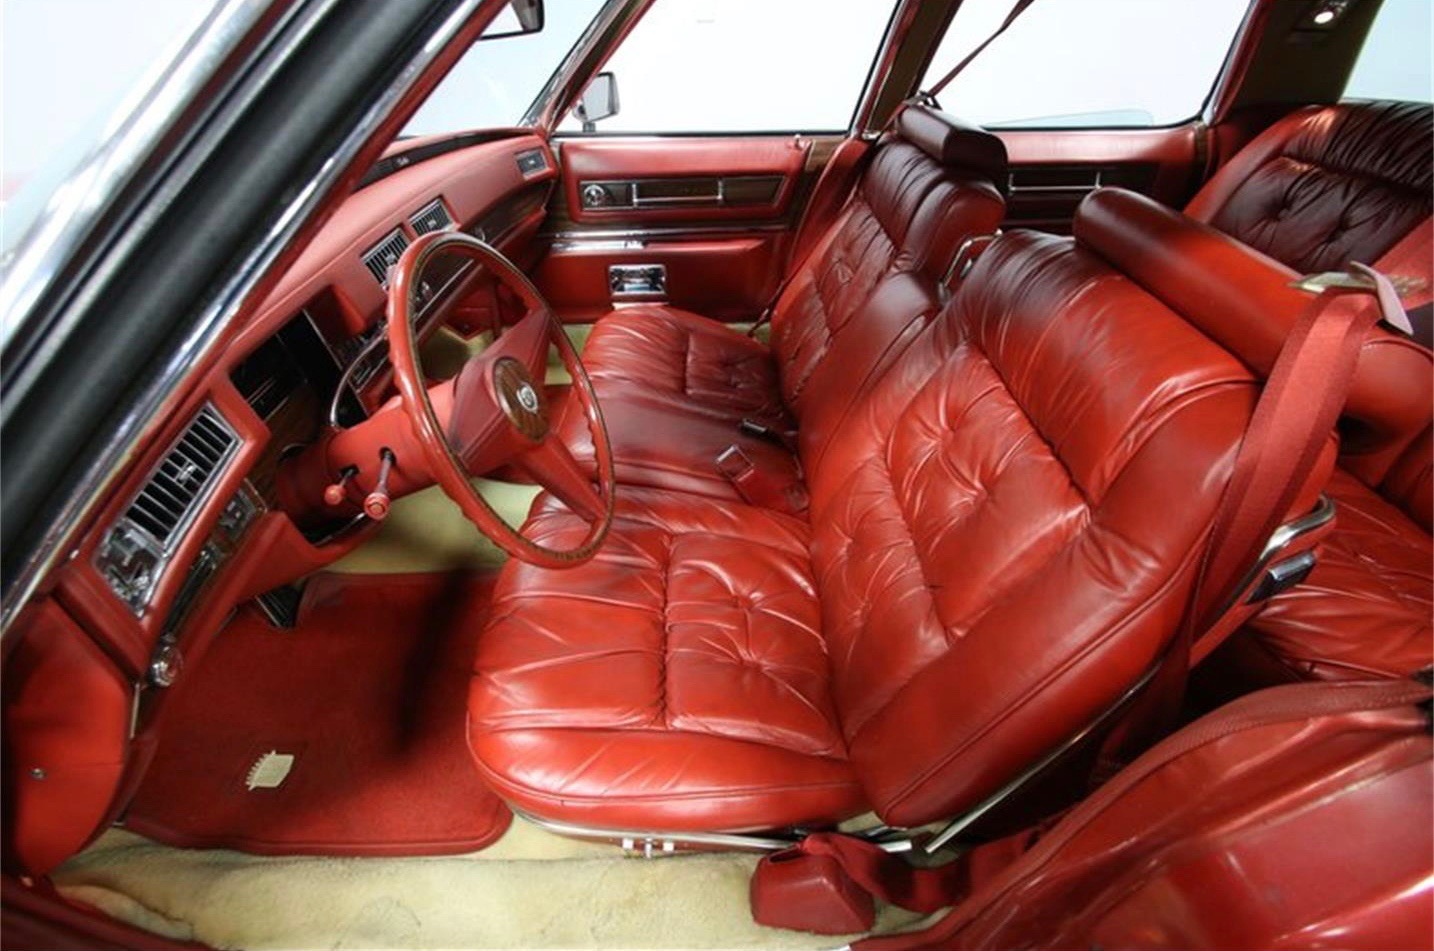 1976 Cadillac station wagon, Cadillac didn't build station wagons in 1976, but someone did, ClassicCars.com Journal